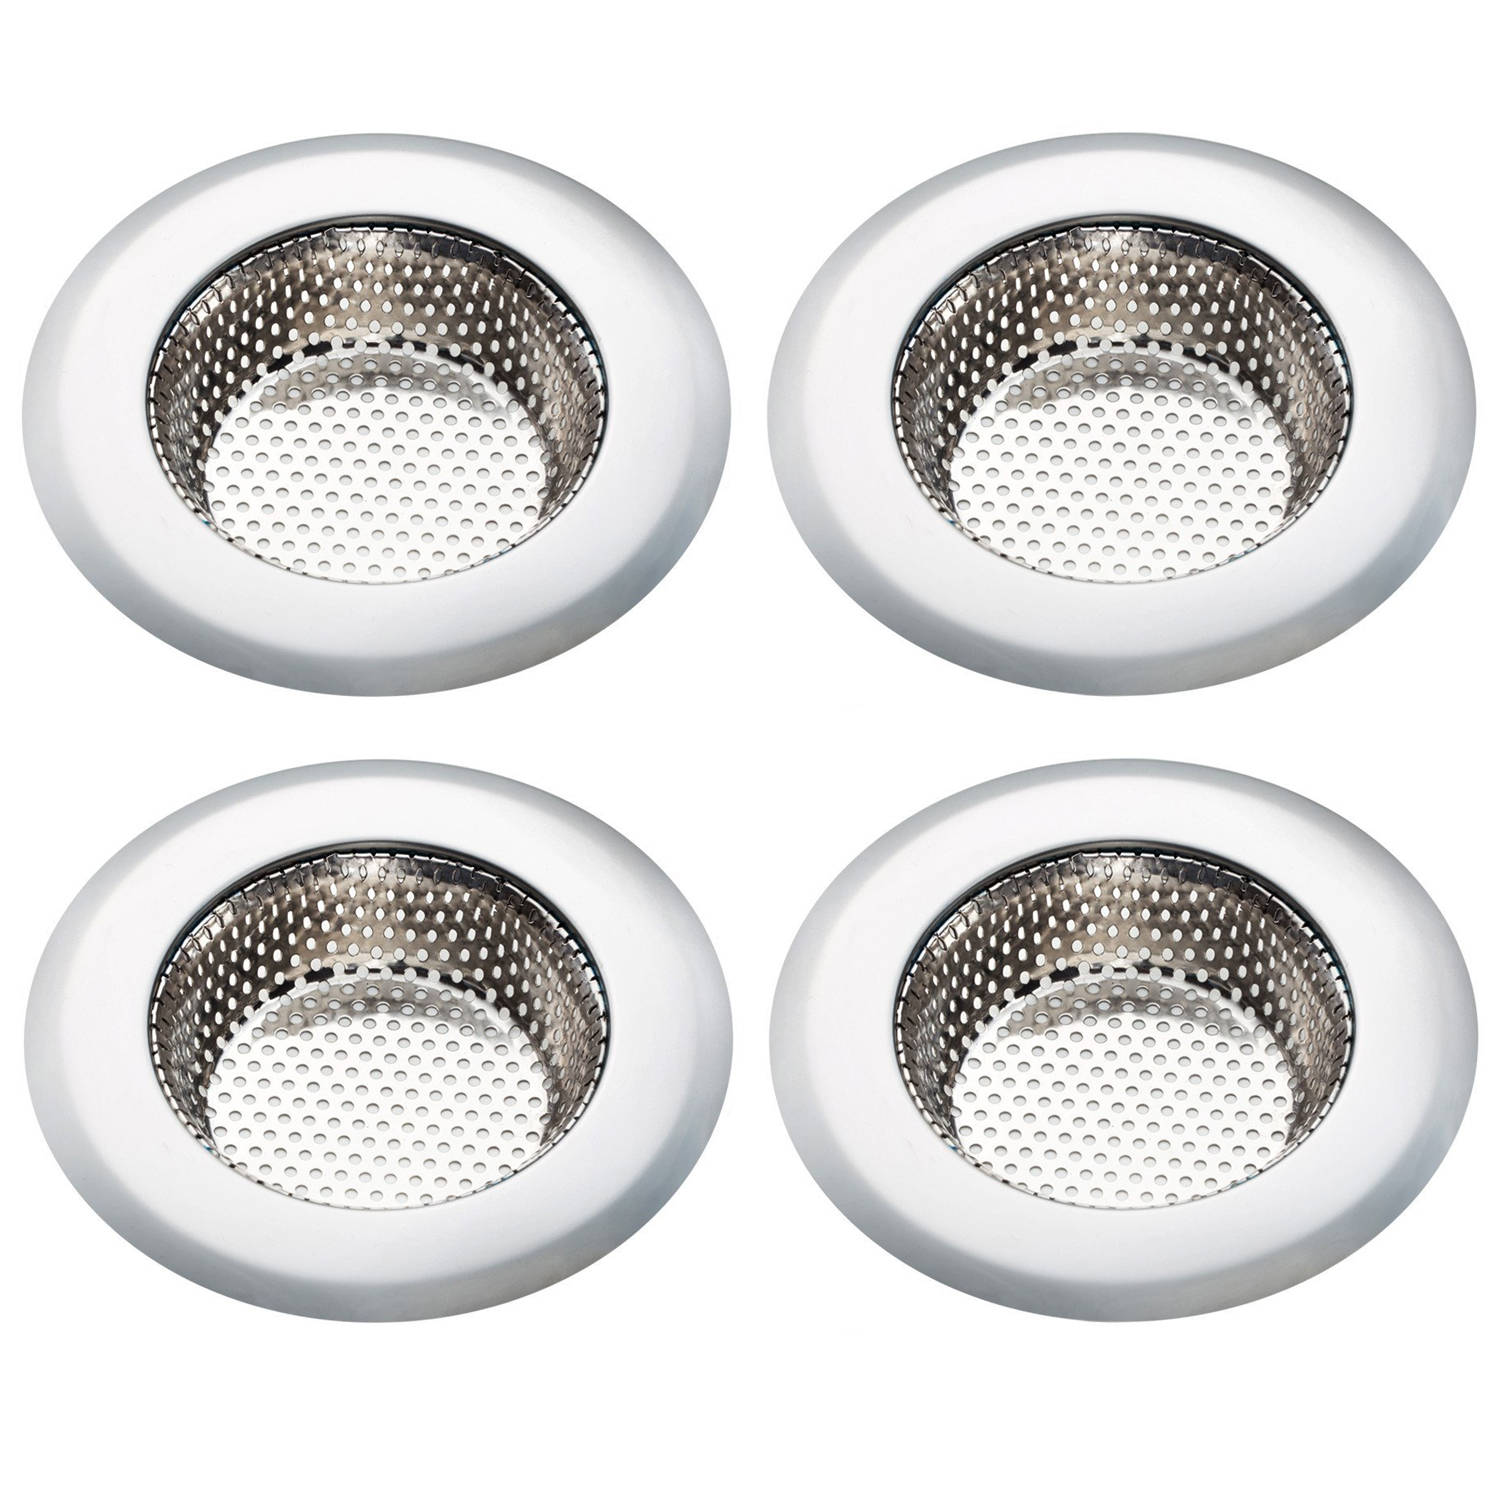 Sink Drain Stoppers